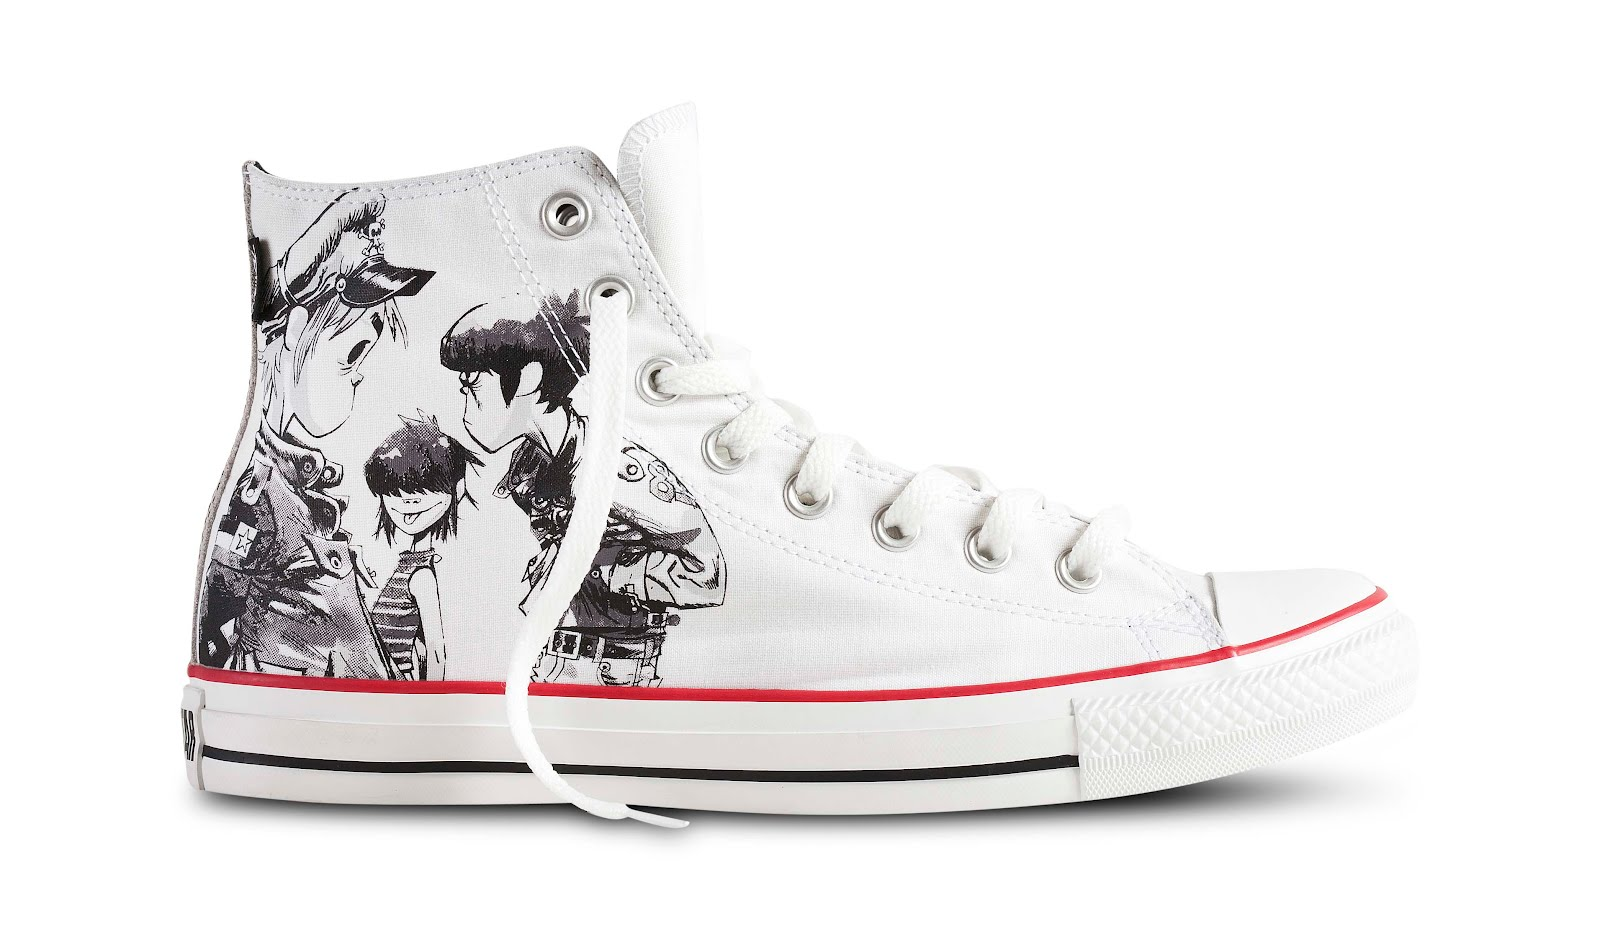 CONVERSE X GORILLAZ CHUCK TAYLOR ALL STAR COLLECTION 2012